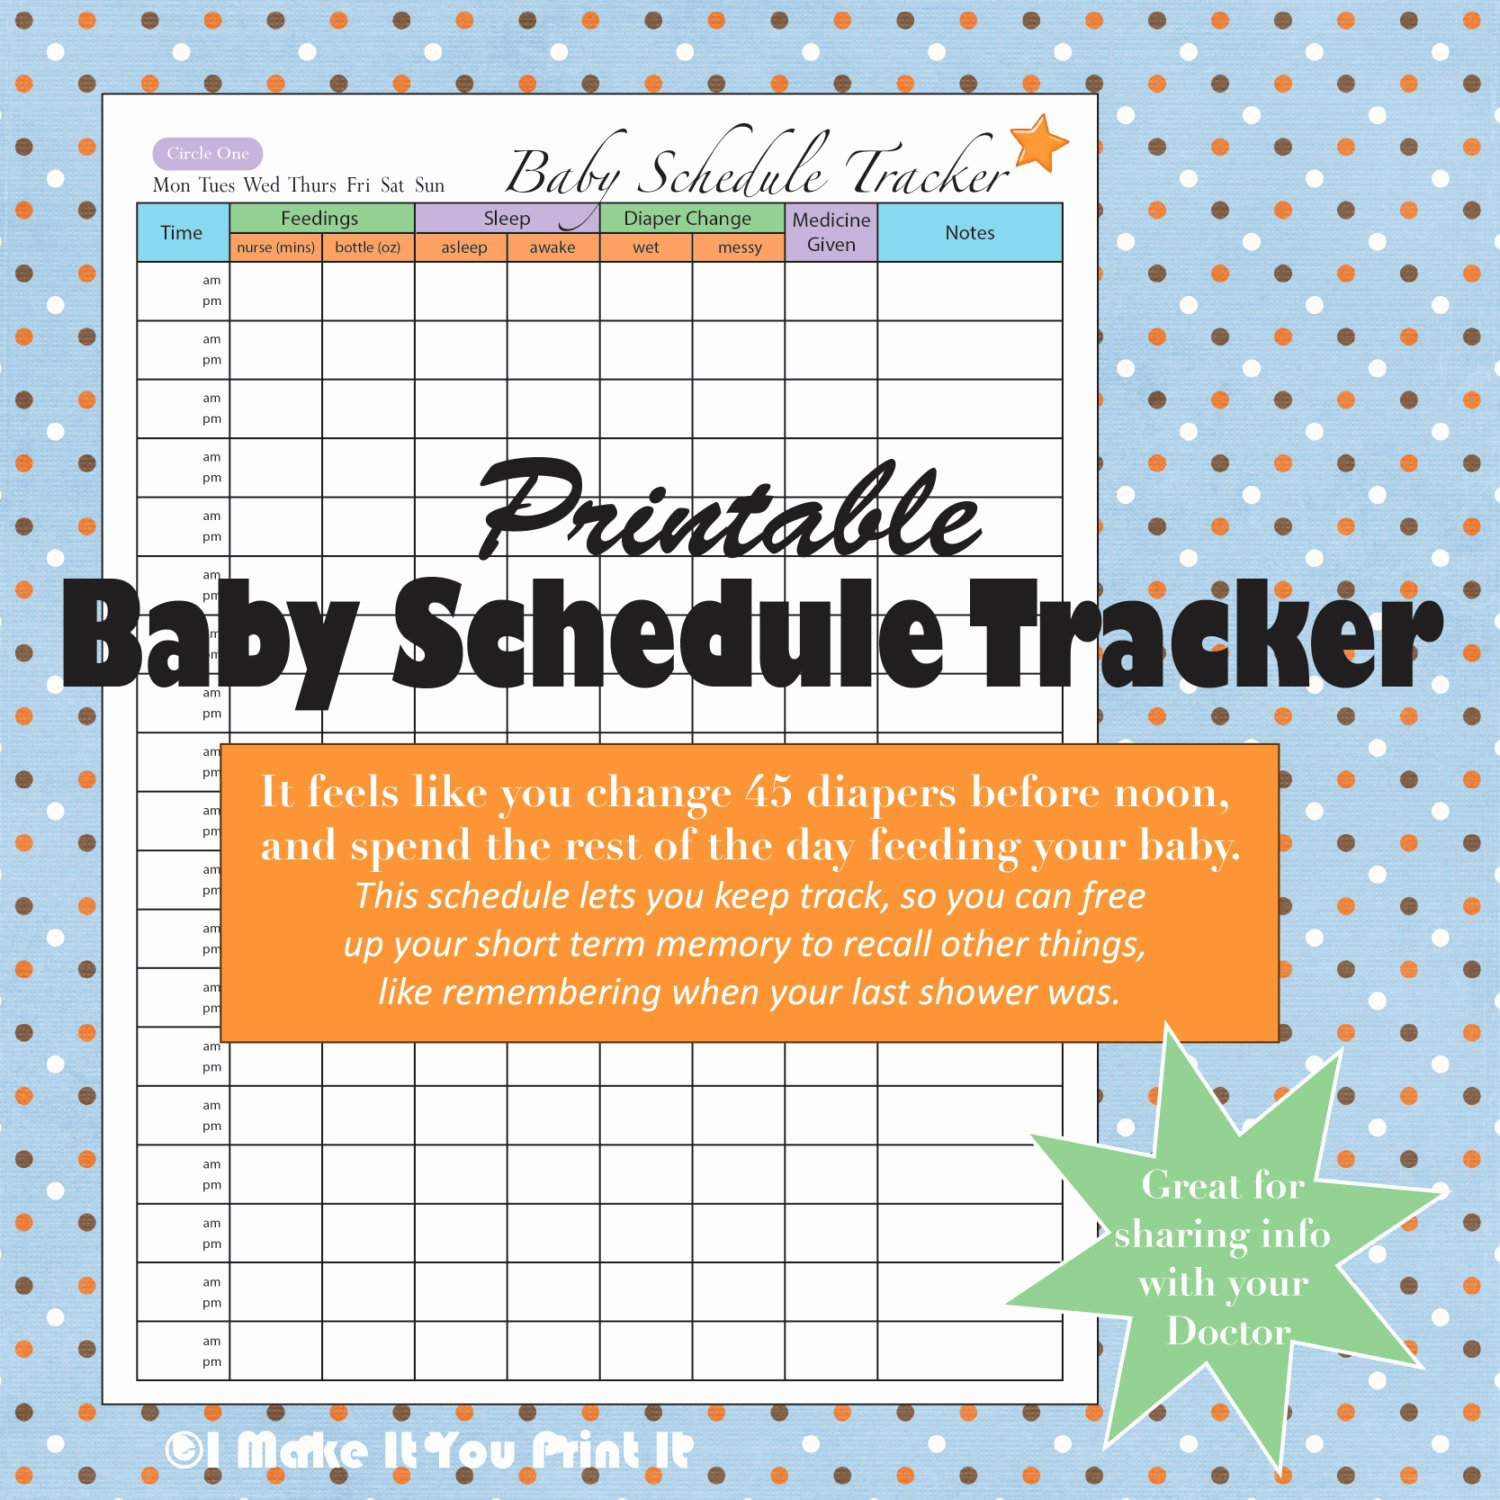 Baby Daily Schedule Template Lovely Printable Baby Schedule Tracker and Twins Schedule Tracker